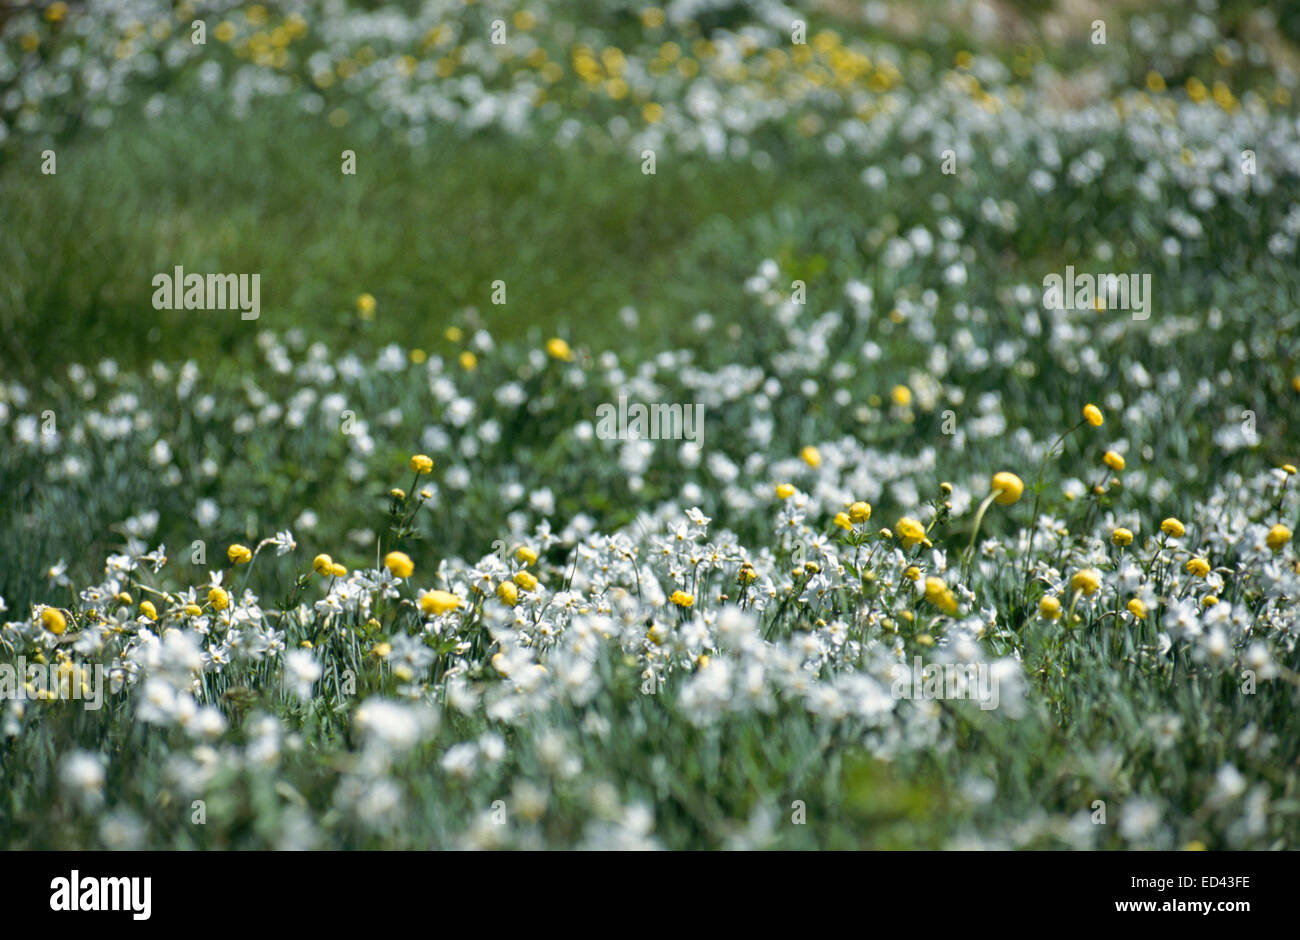 Yellow and white flowers field with low depth of field and blur background - Stock Image